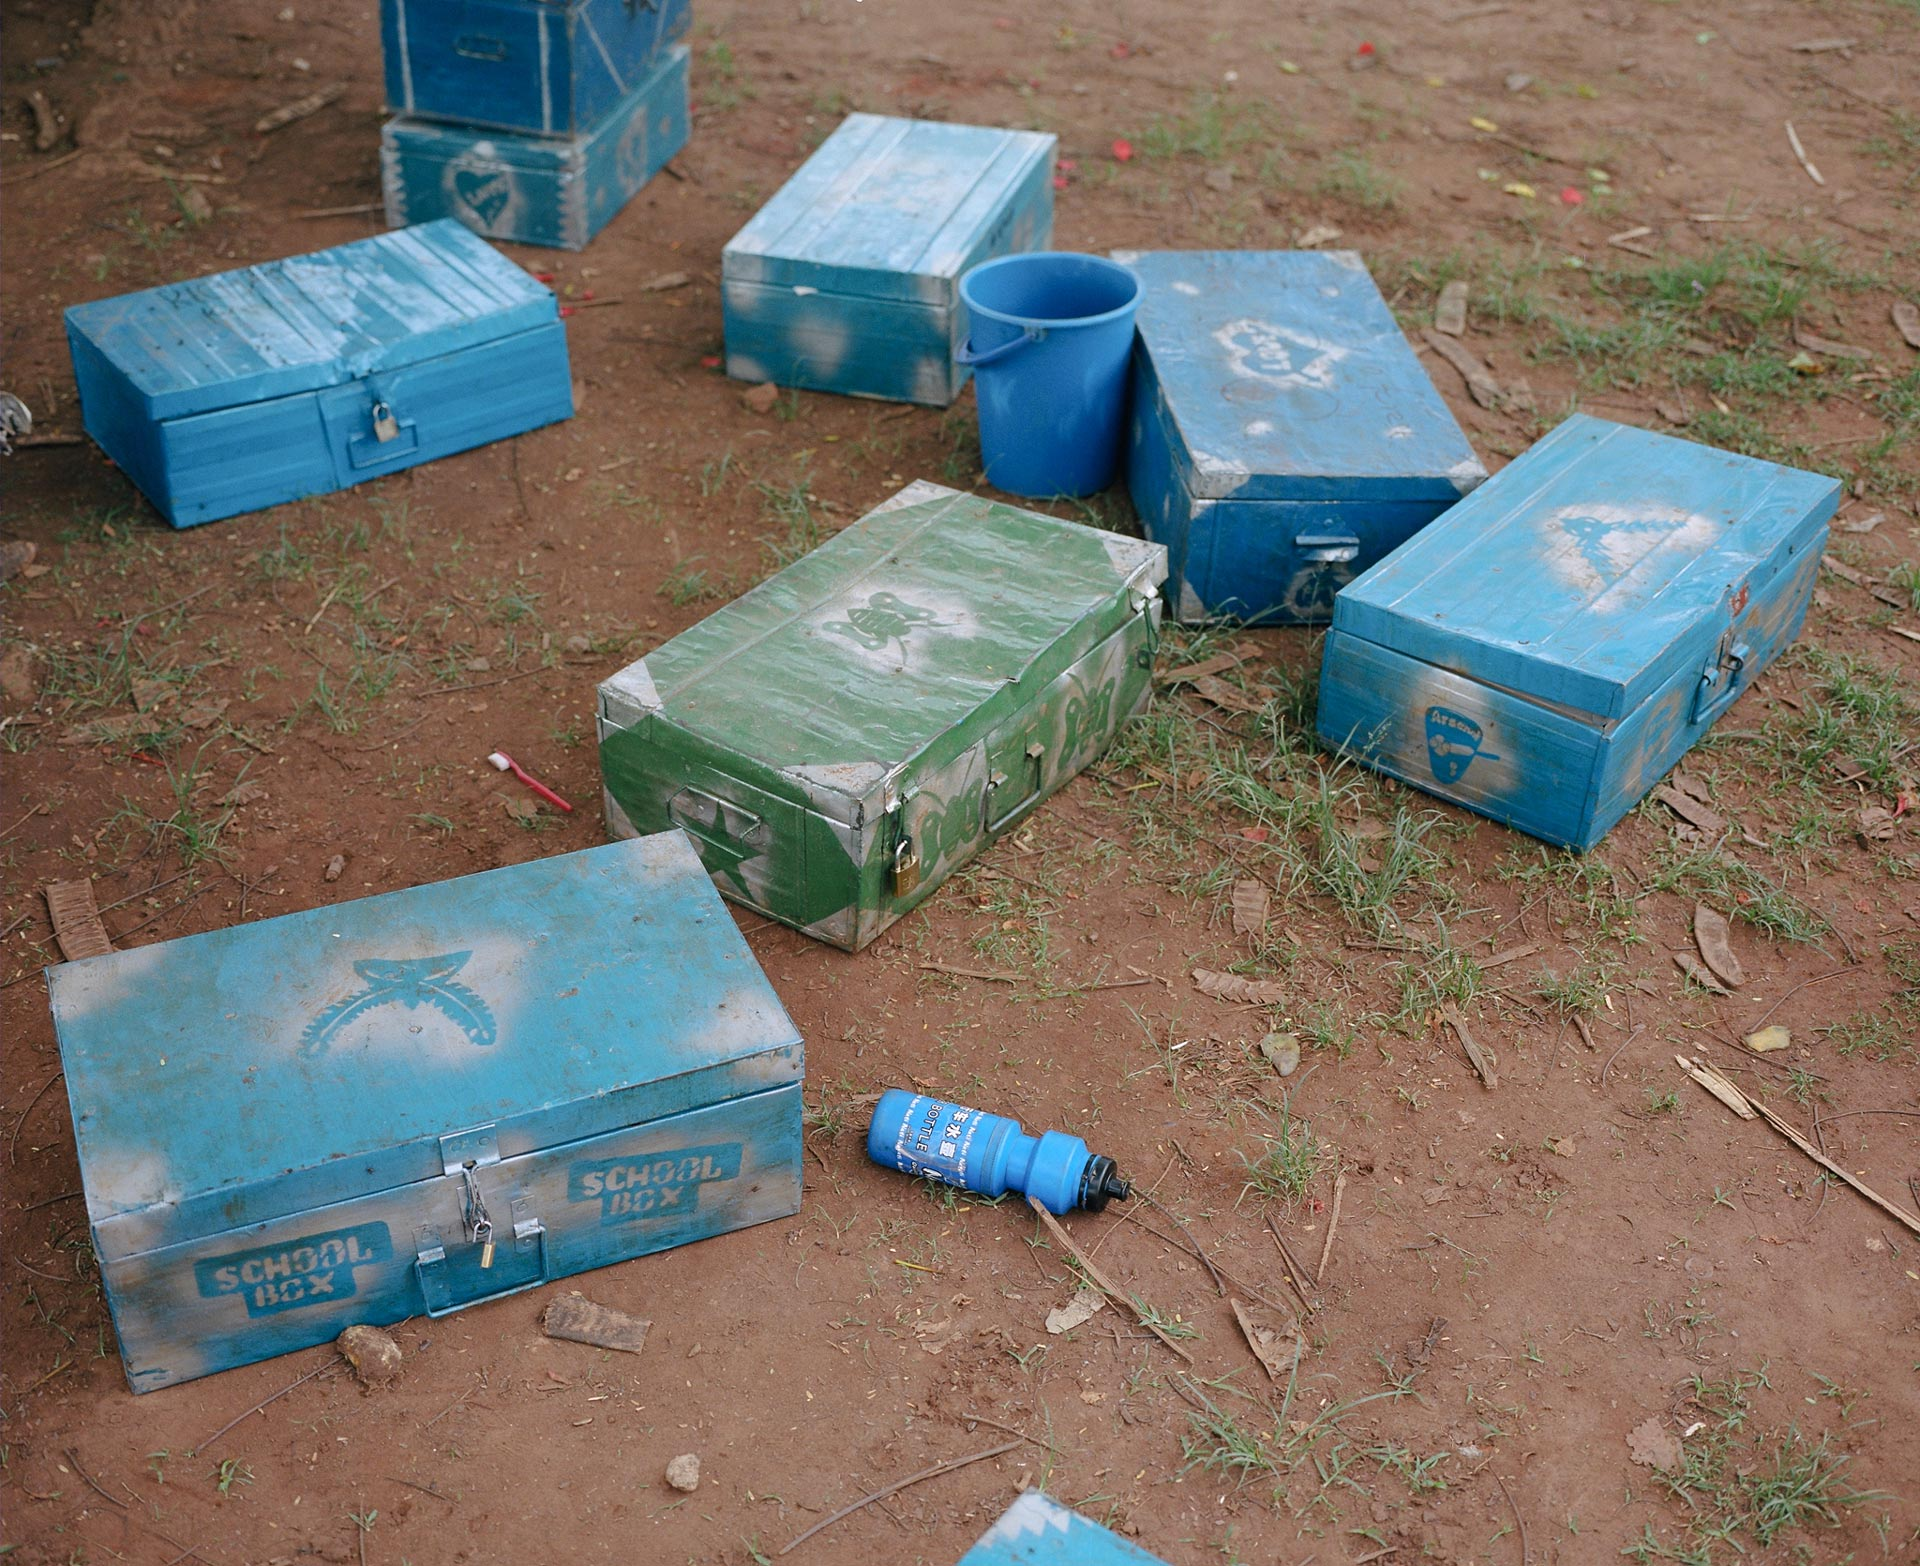 blue metal chests on the ground decorated and labeled school boxes with blue water bottle around by Alexi Hobbs in Uganda for Football for Good with Sportsnet